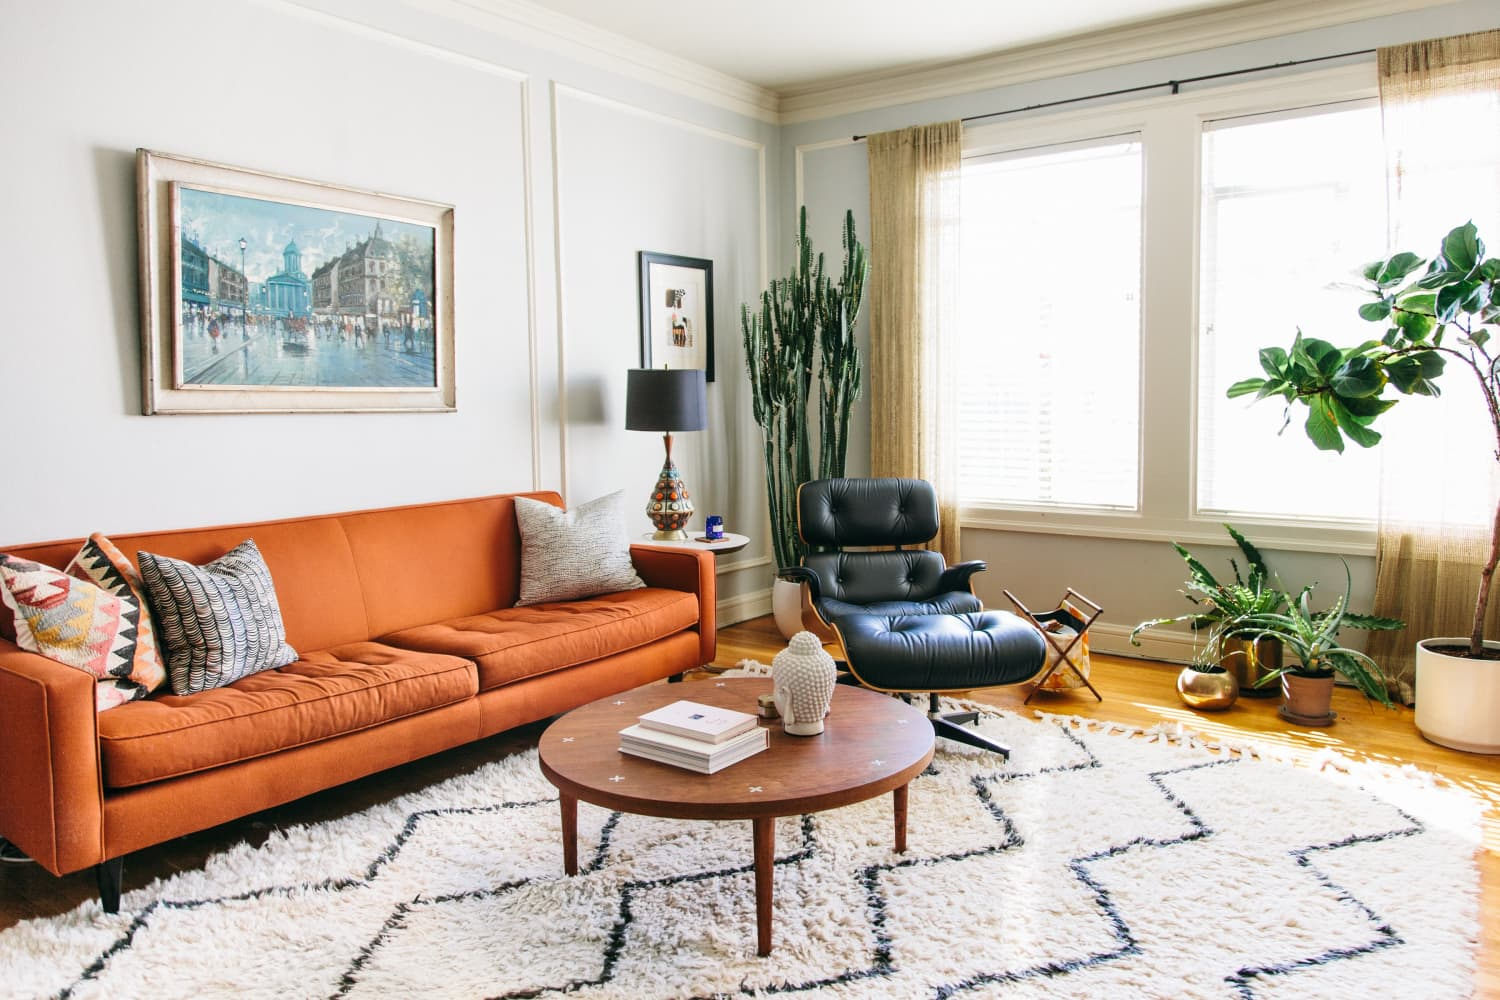 The Best Places to Buy Used & Vintage Furniture Online